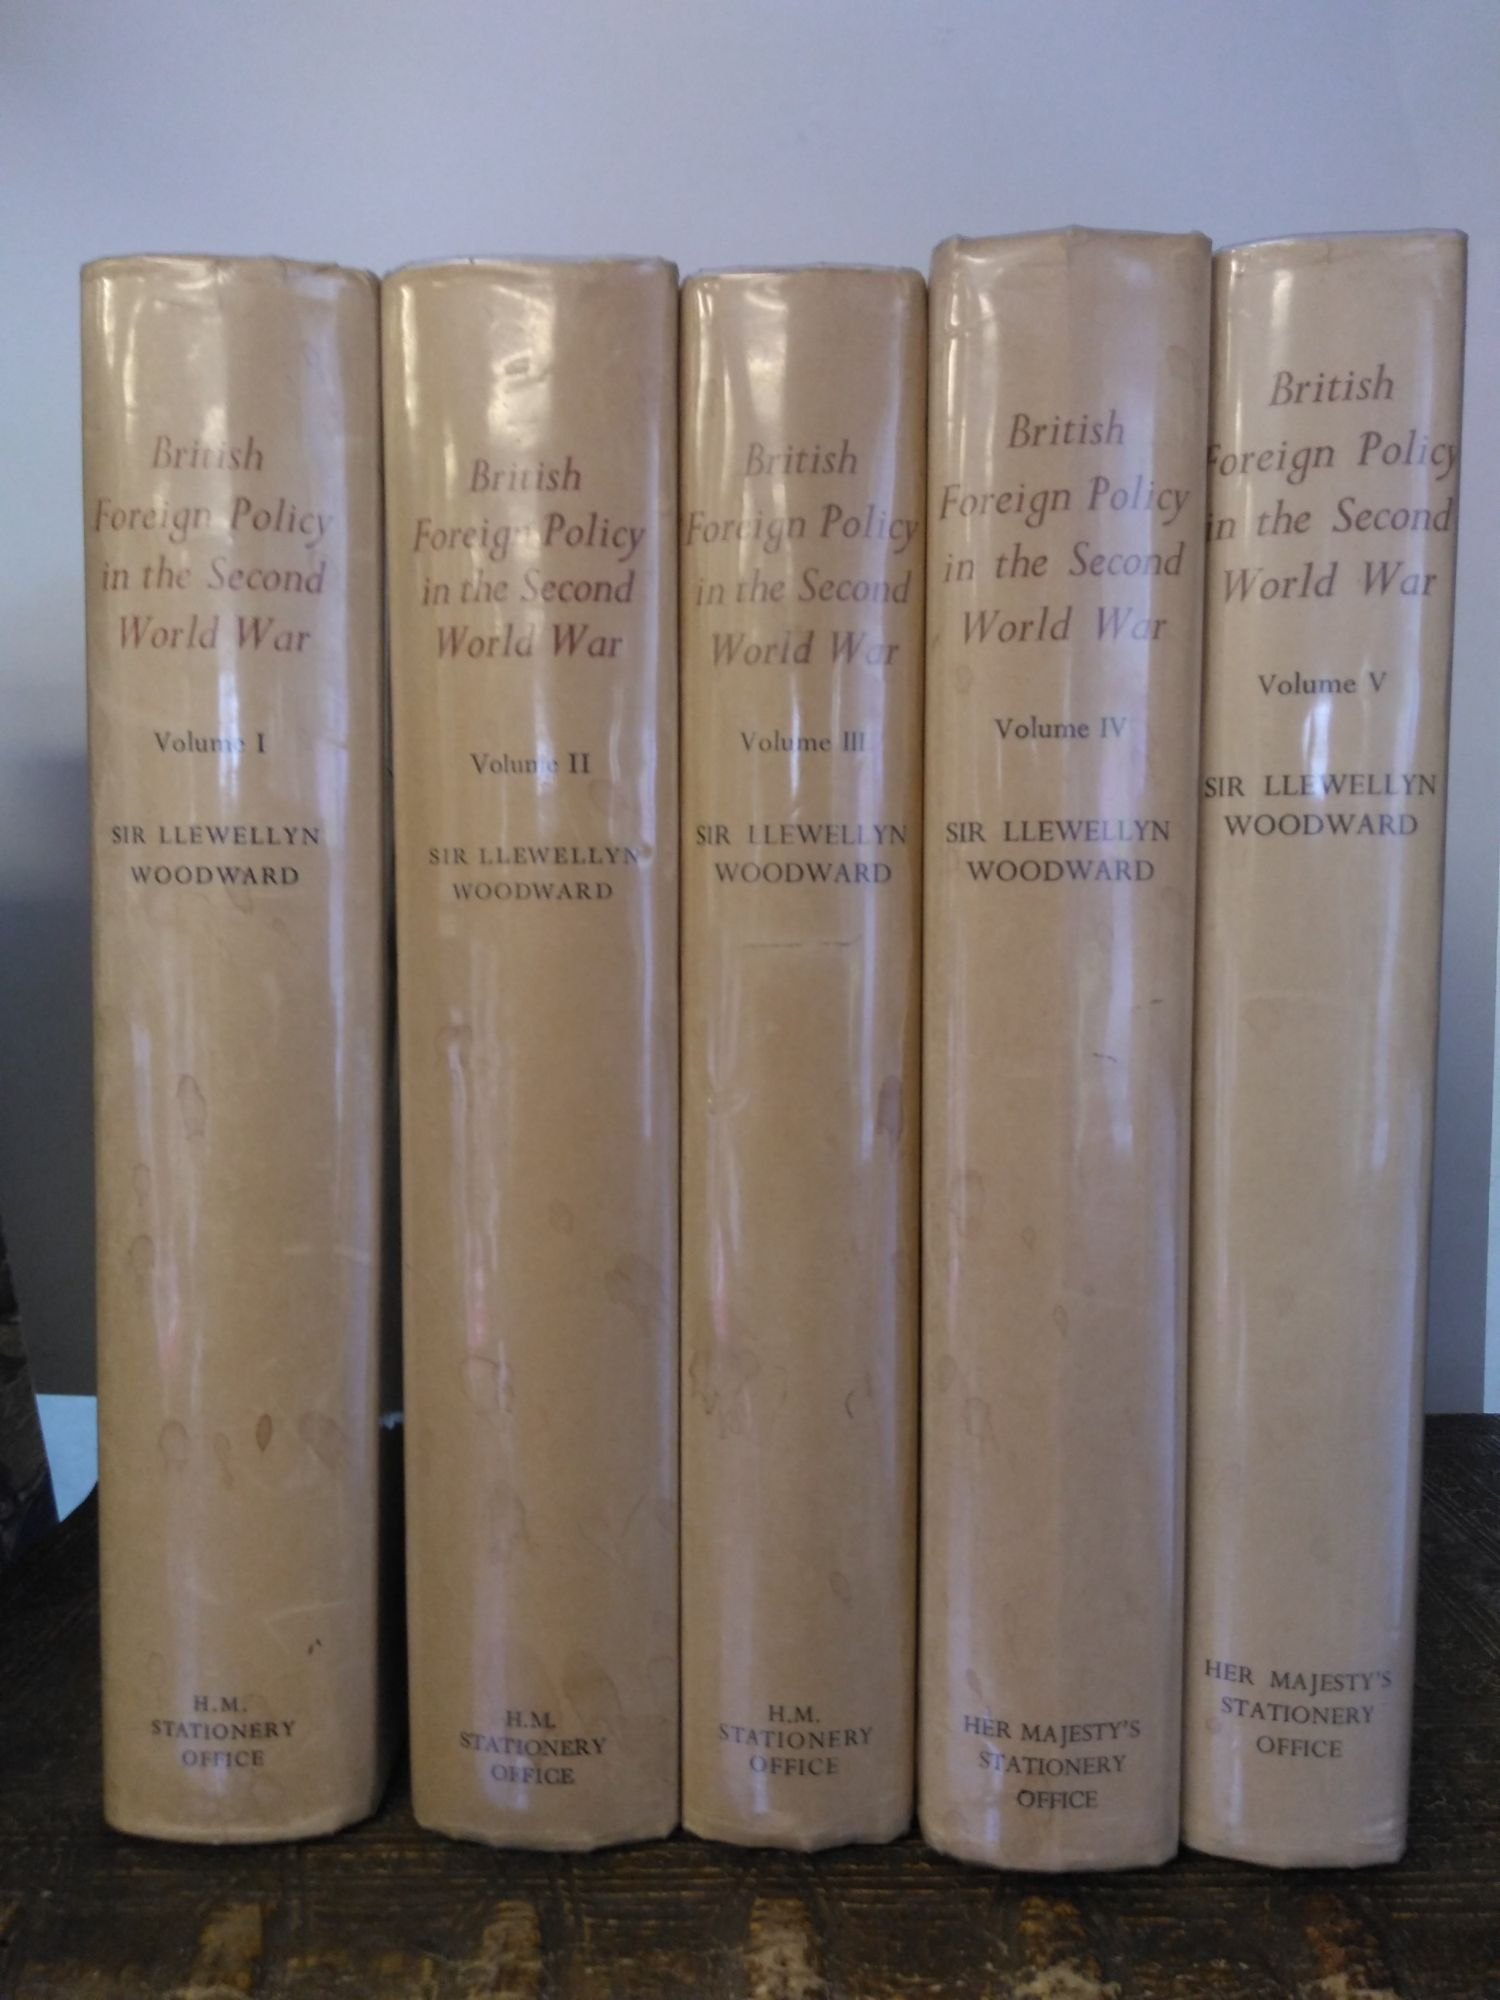 BRITISH FOREIGN POLICY IN THE SECOND WORLD WAR [HISTORY OF THE SECOND WORLD WAR] [5 VOLUMES]. Llewellyn Woodward.